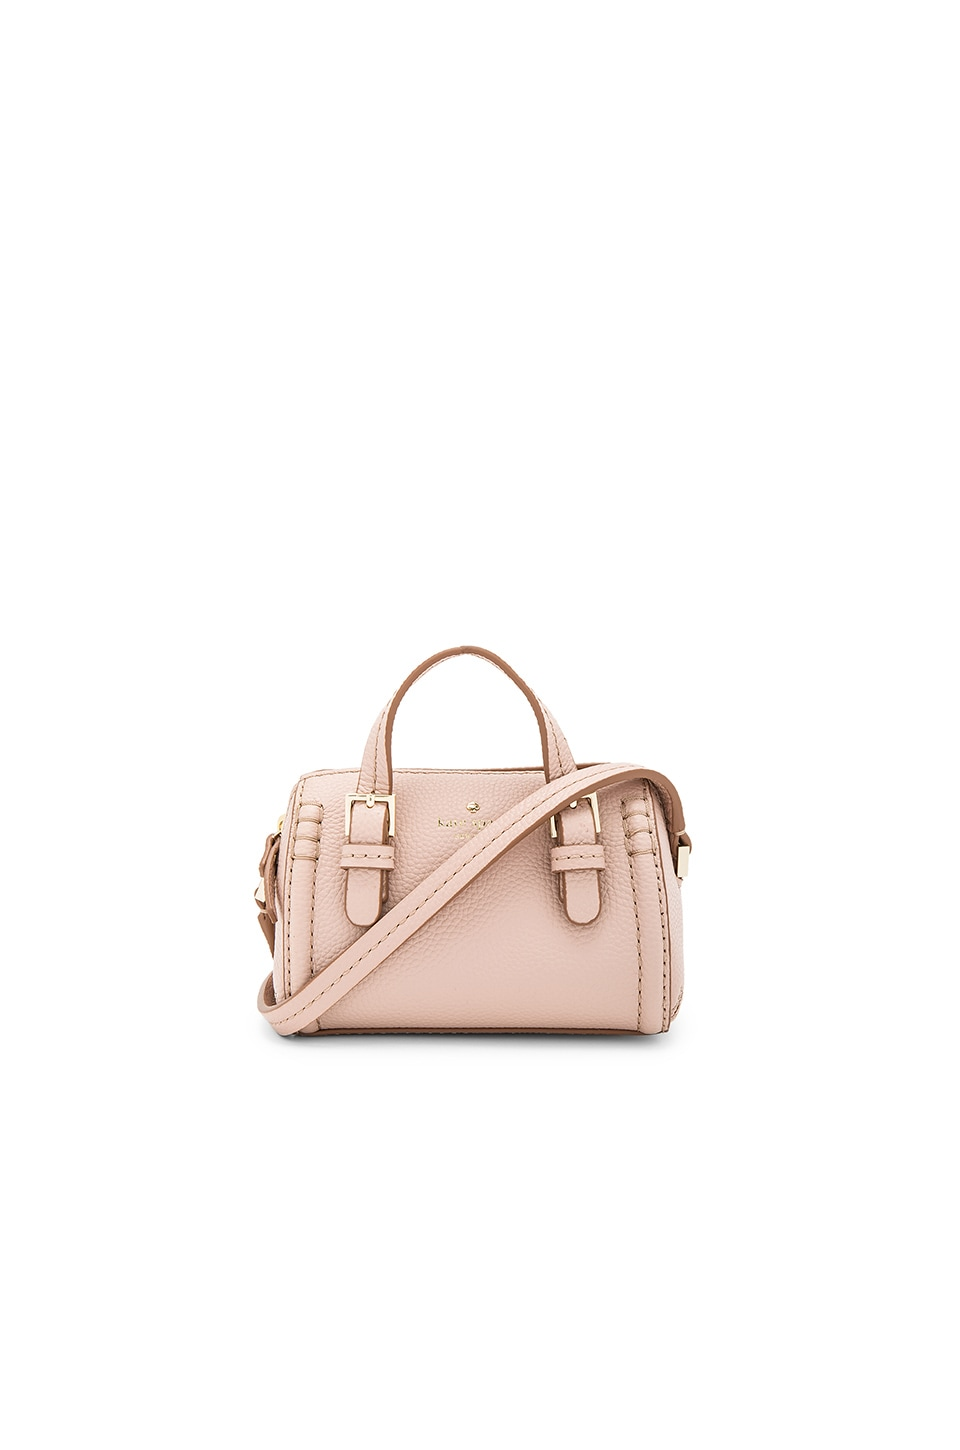 kate spade new york Charlie Crossbody in Au Naturel